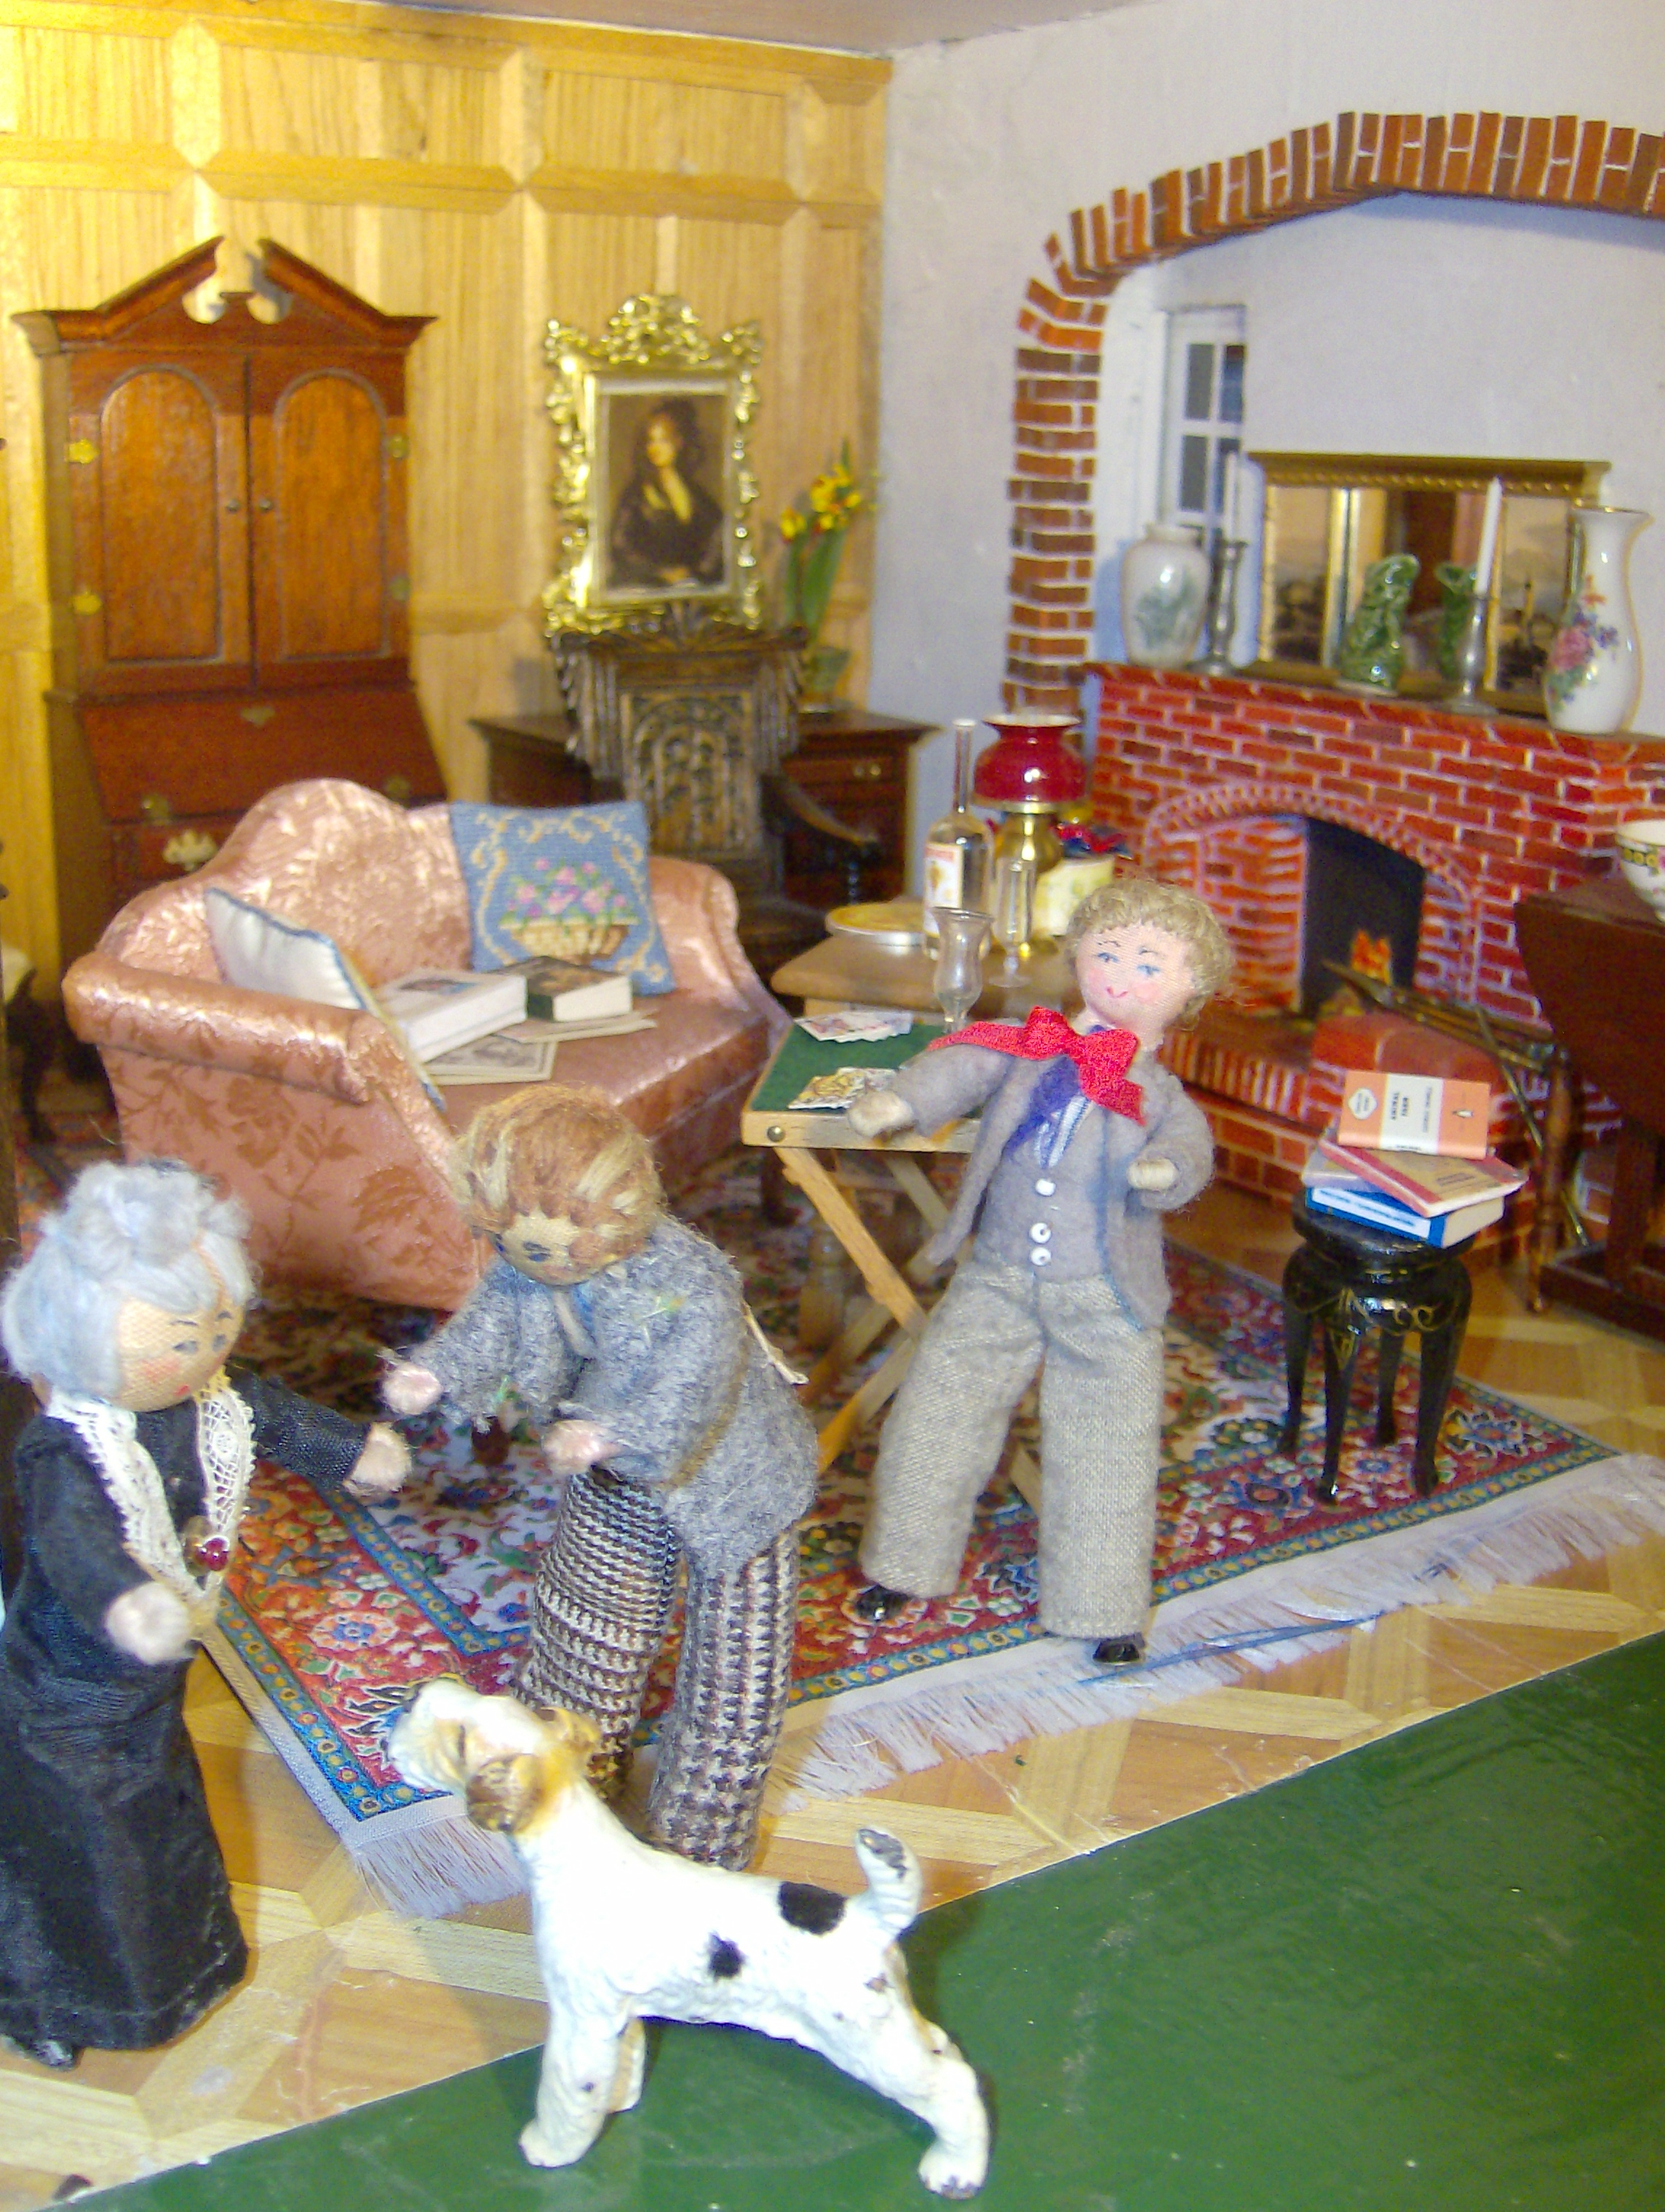 Norah showed Edith into the drawing room and Bryan went forward to greet their cantankerous visitor,